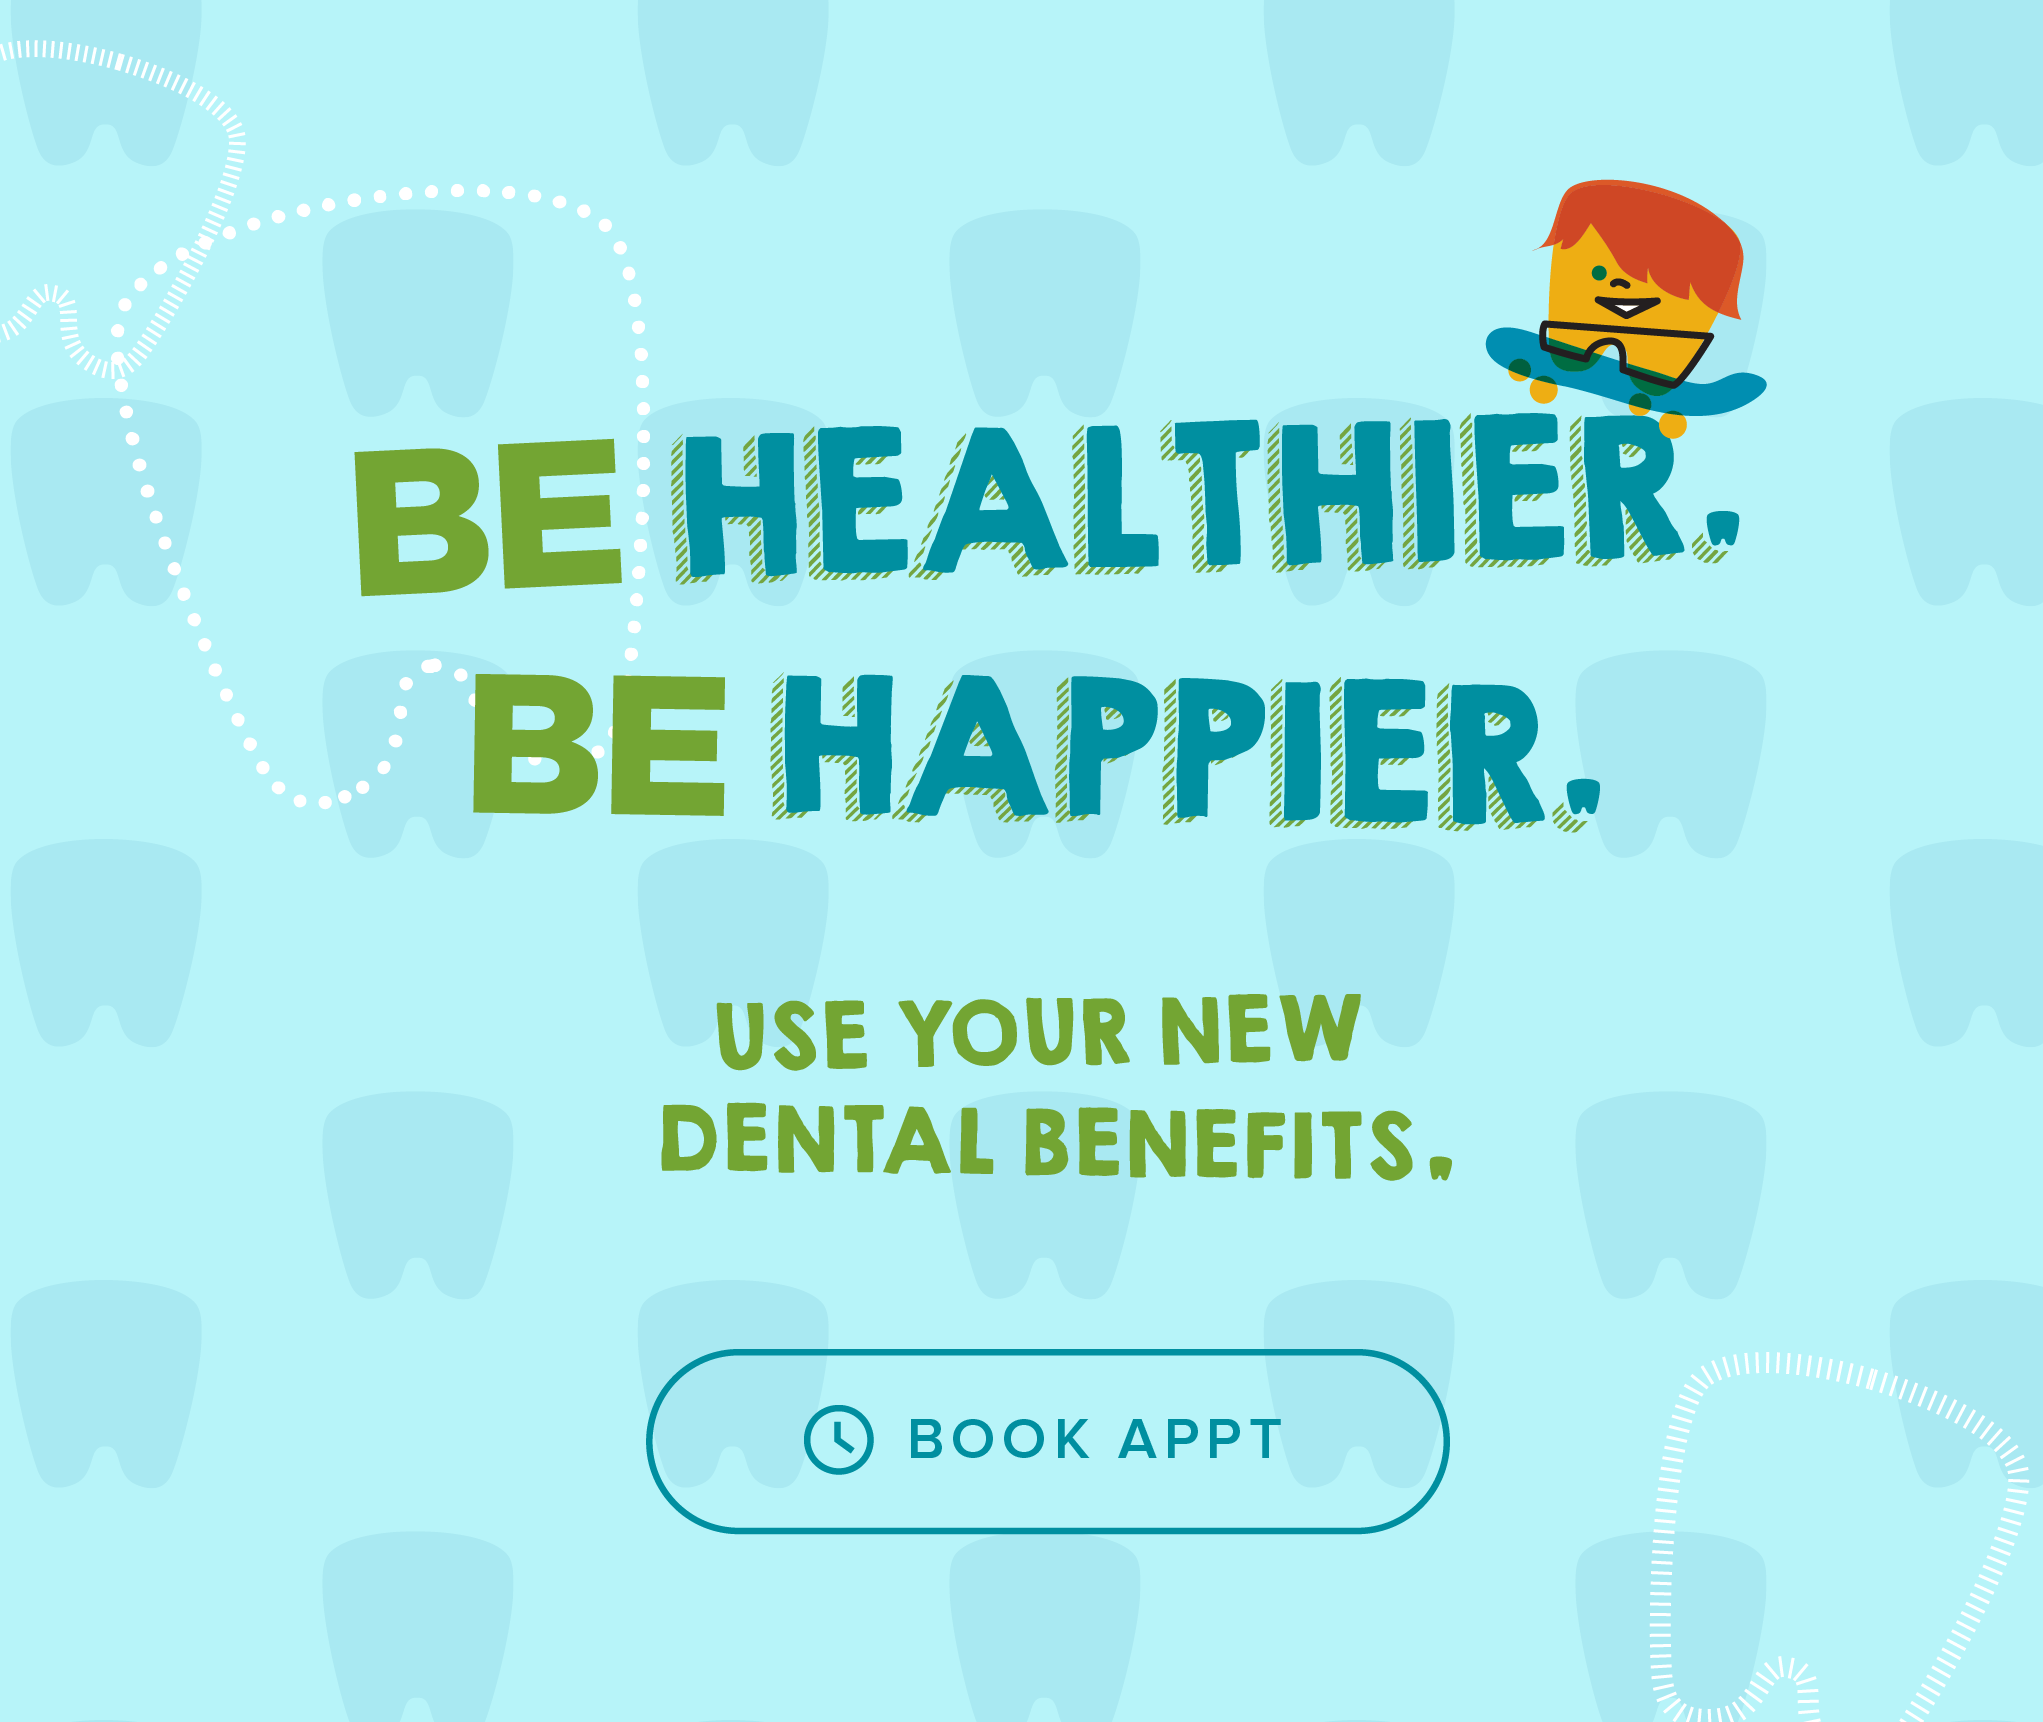 Be Healthier. Be Happier. Use your new dental benefits. - Kids' Dentists of Surprise & Orthodontics